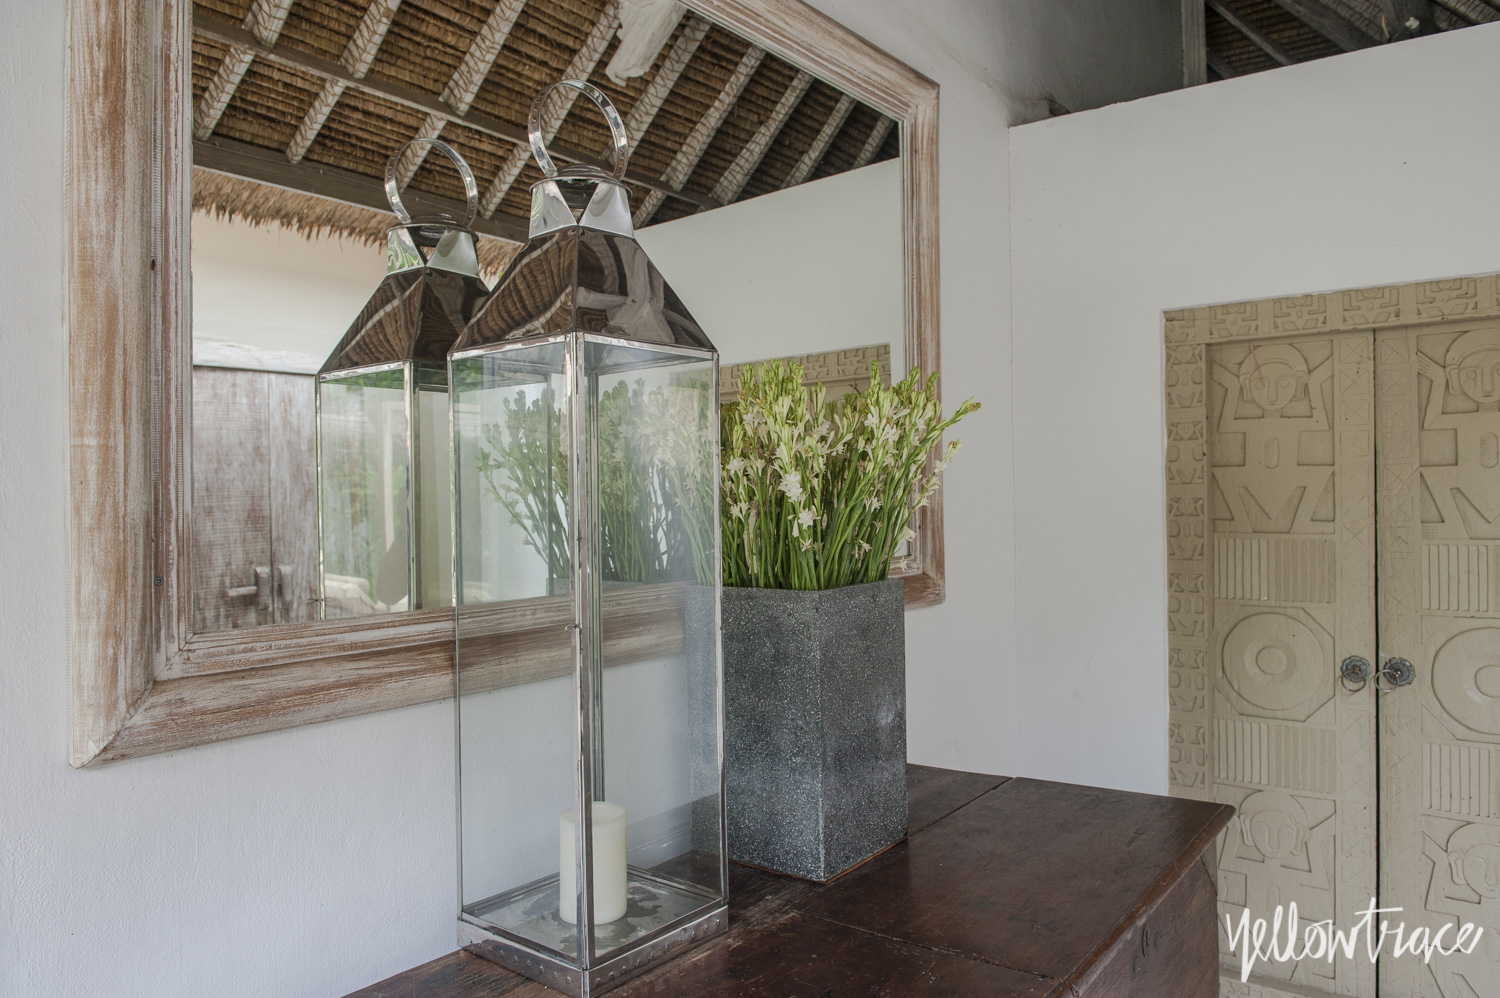 Villa Sungai Gold Cepaka Bali, Photo © Nick Hughes | Yellowtrace